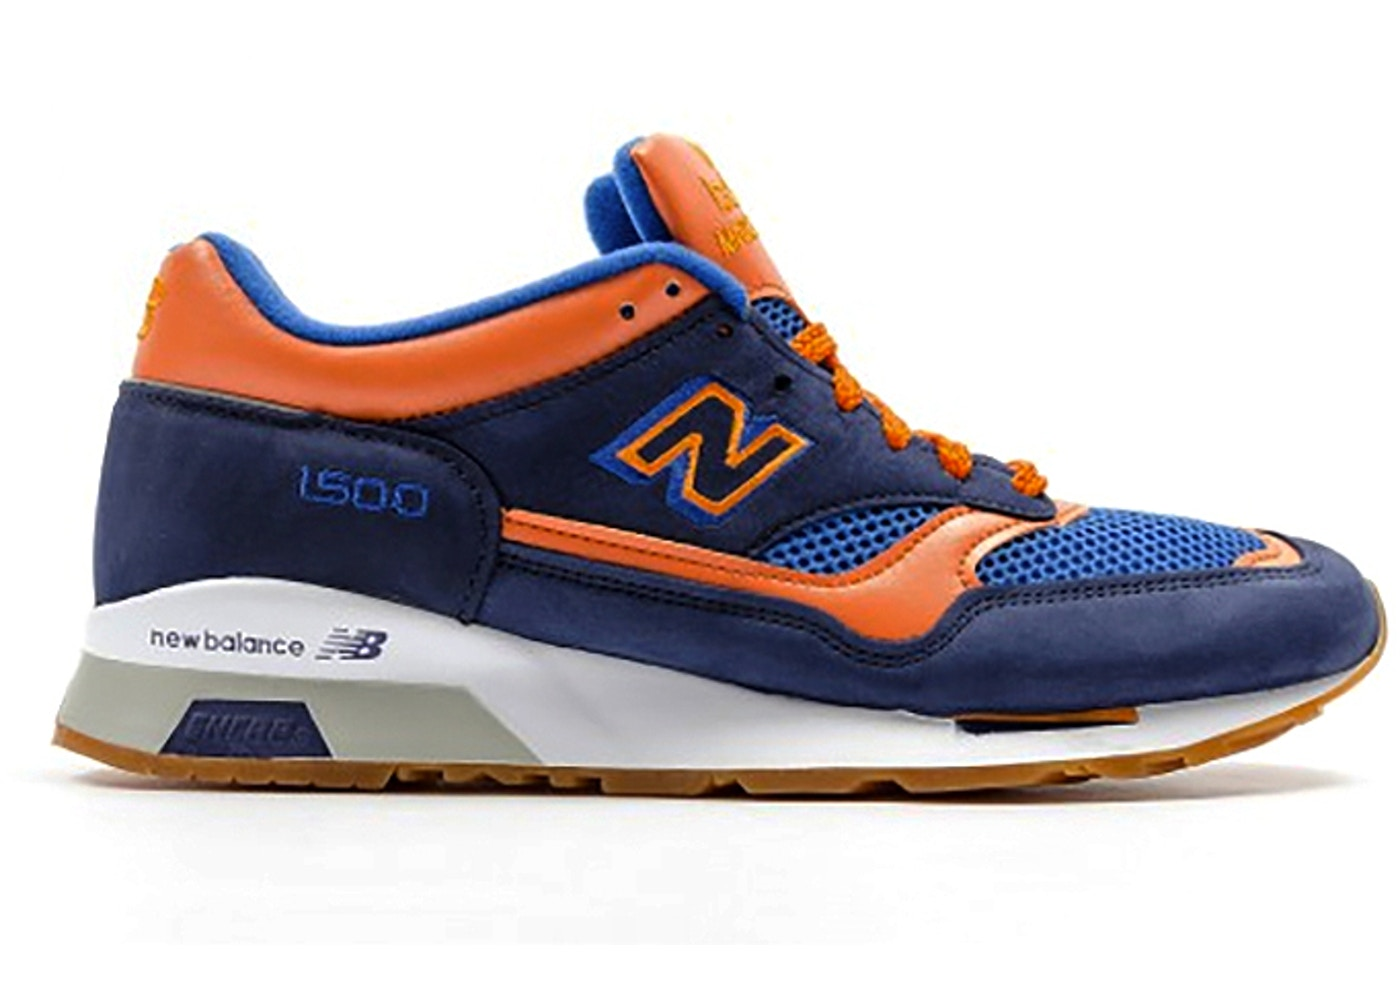 quality design 3aaa4 c167d New Balance 1500 Blue Orange Reissue